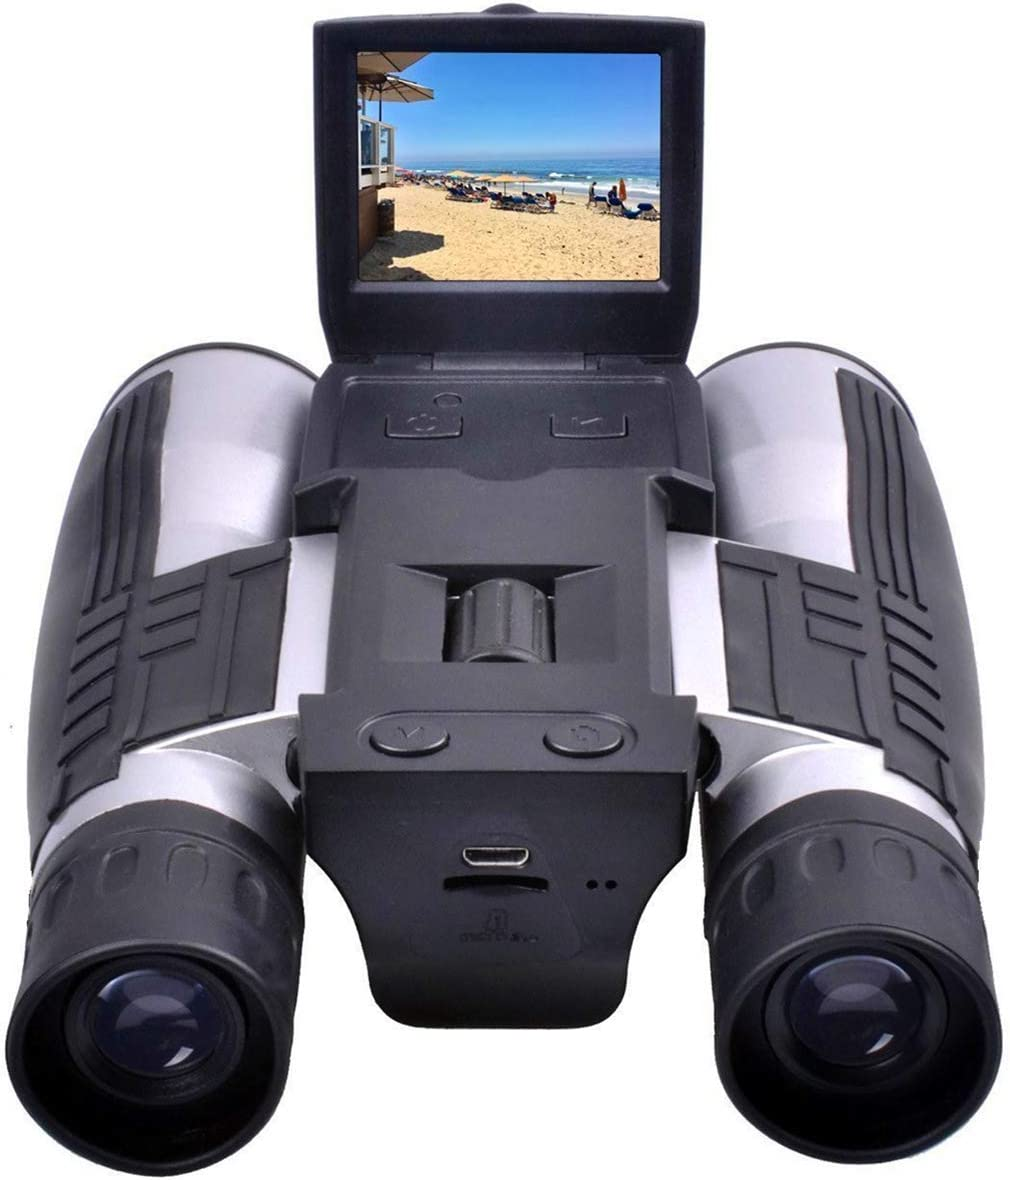 "Binoculars Camera,CamKing FS608 720P Digital Camera Binoculars Camera with 2"" LCD Display 12x32 Folding Prism Digital Binoculars with Camera Video Great for Bird Watching Concerts and Sports Games"